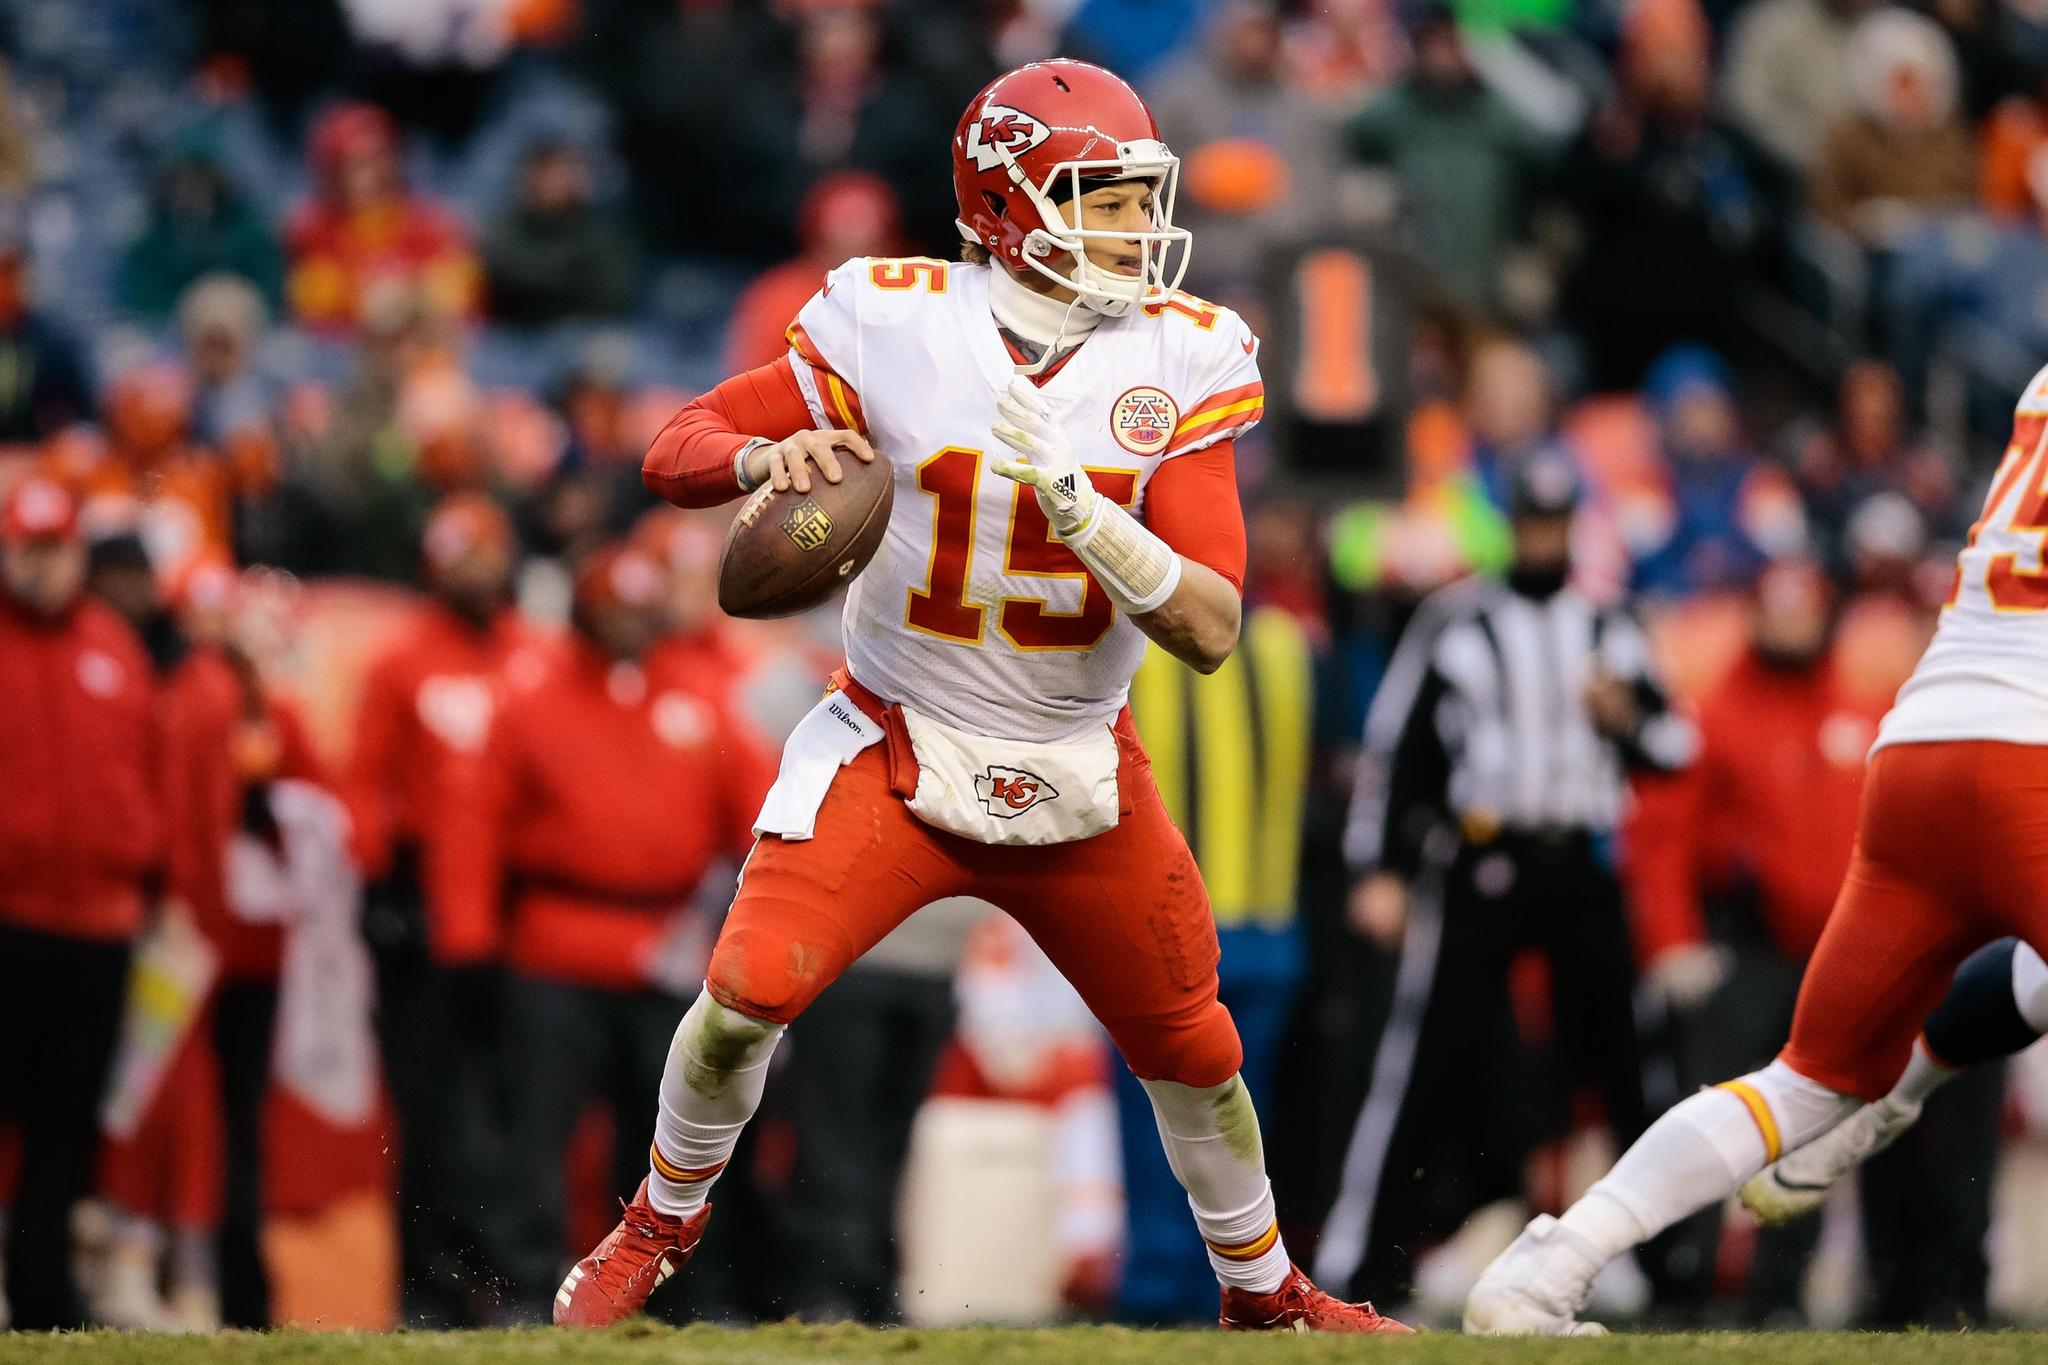 df775dffb05 08/27 - Patrick Mahomes Interview | 610 Sports Radio